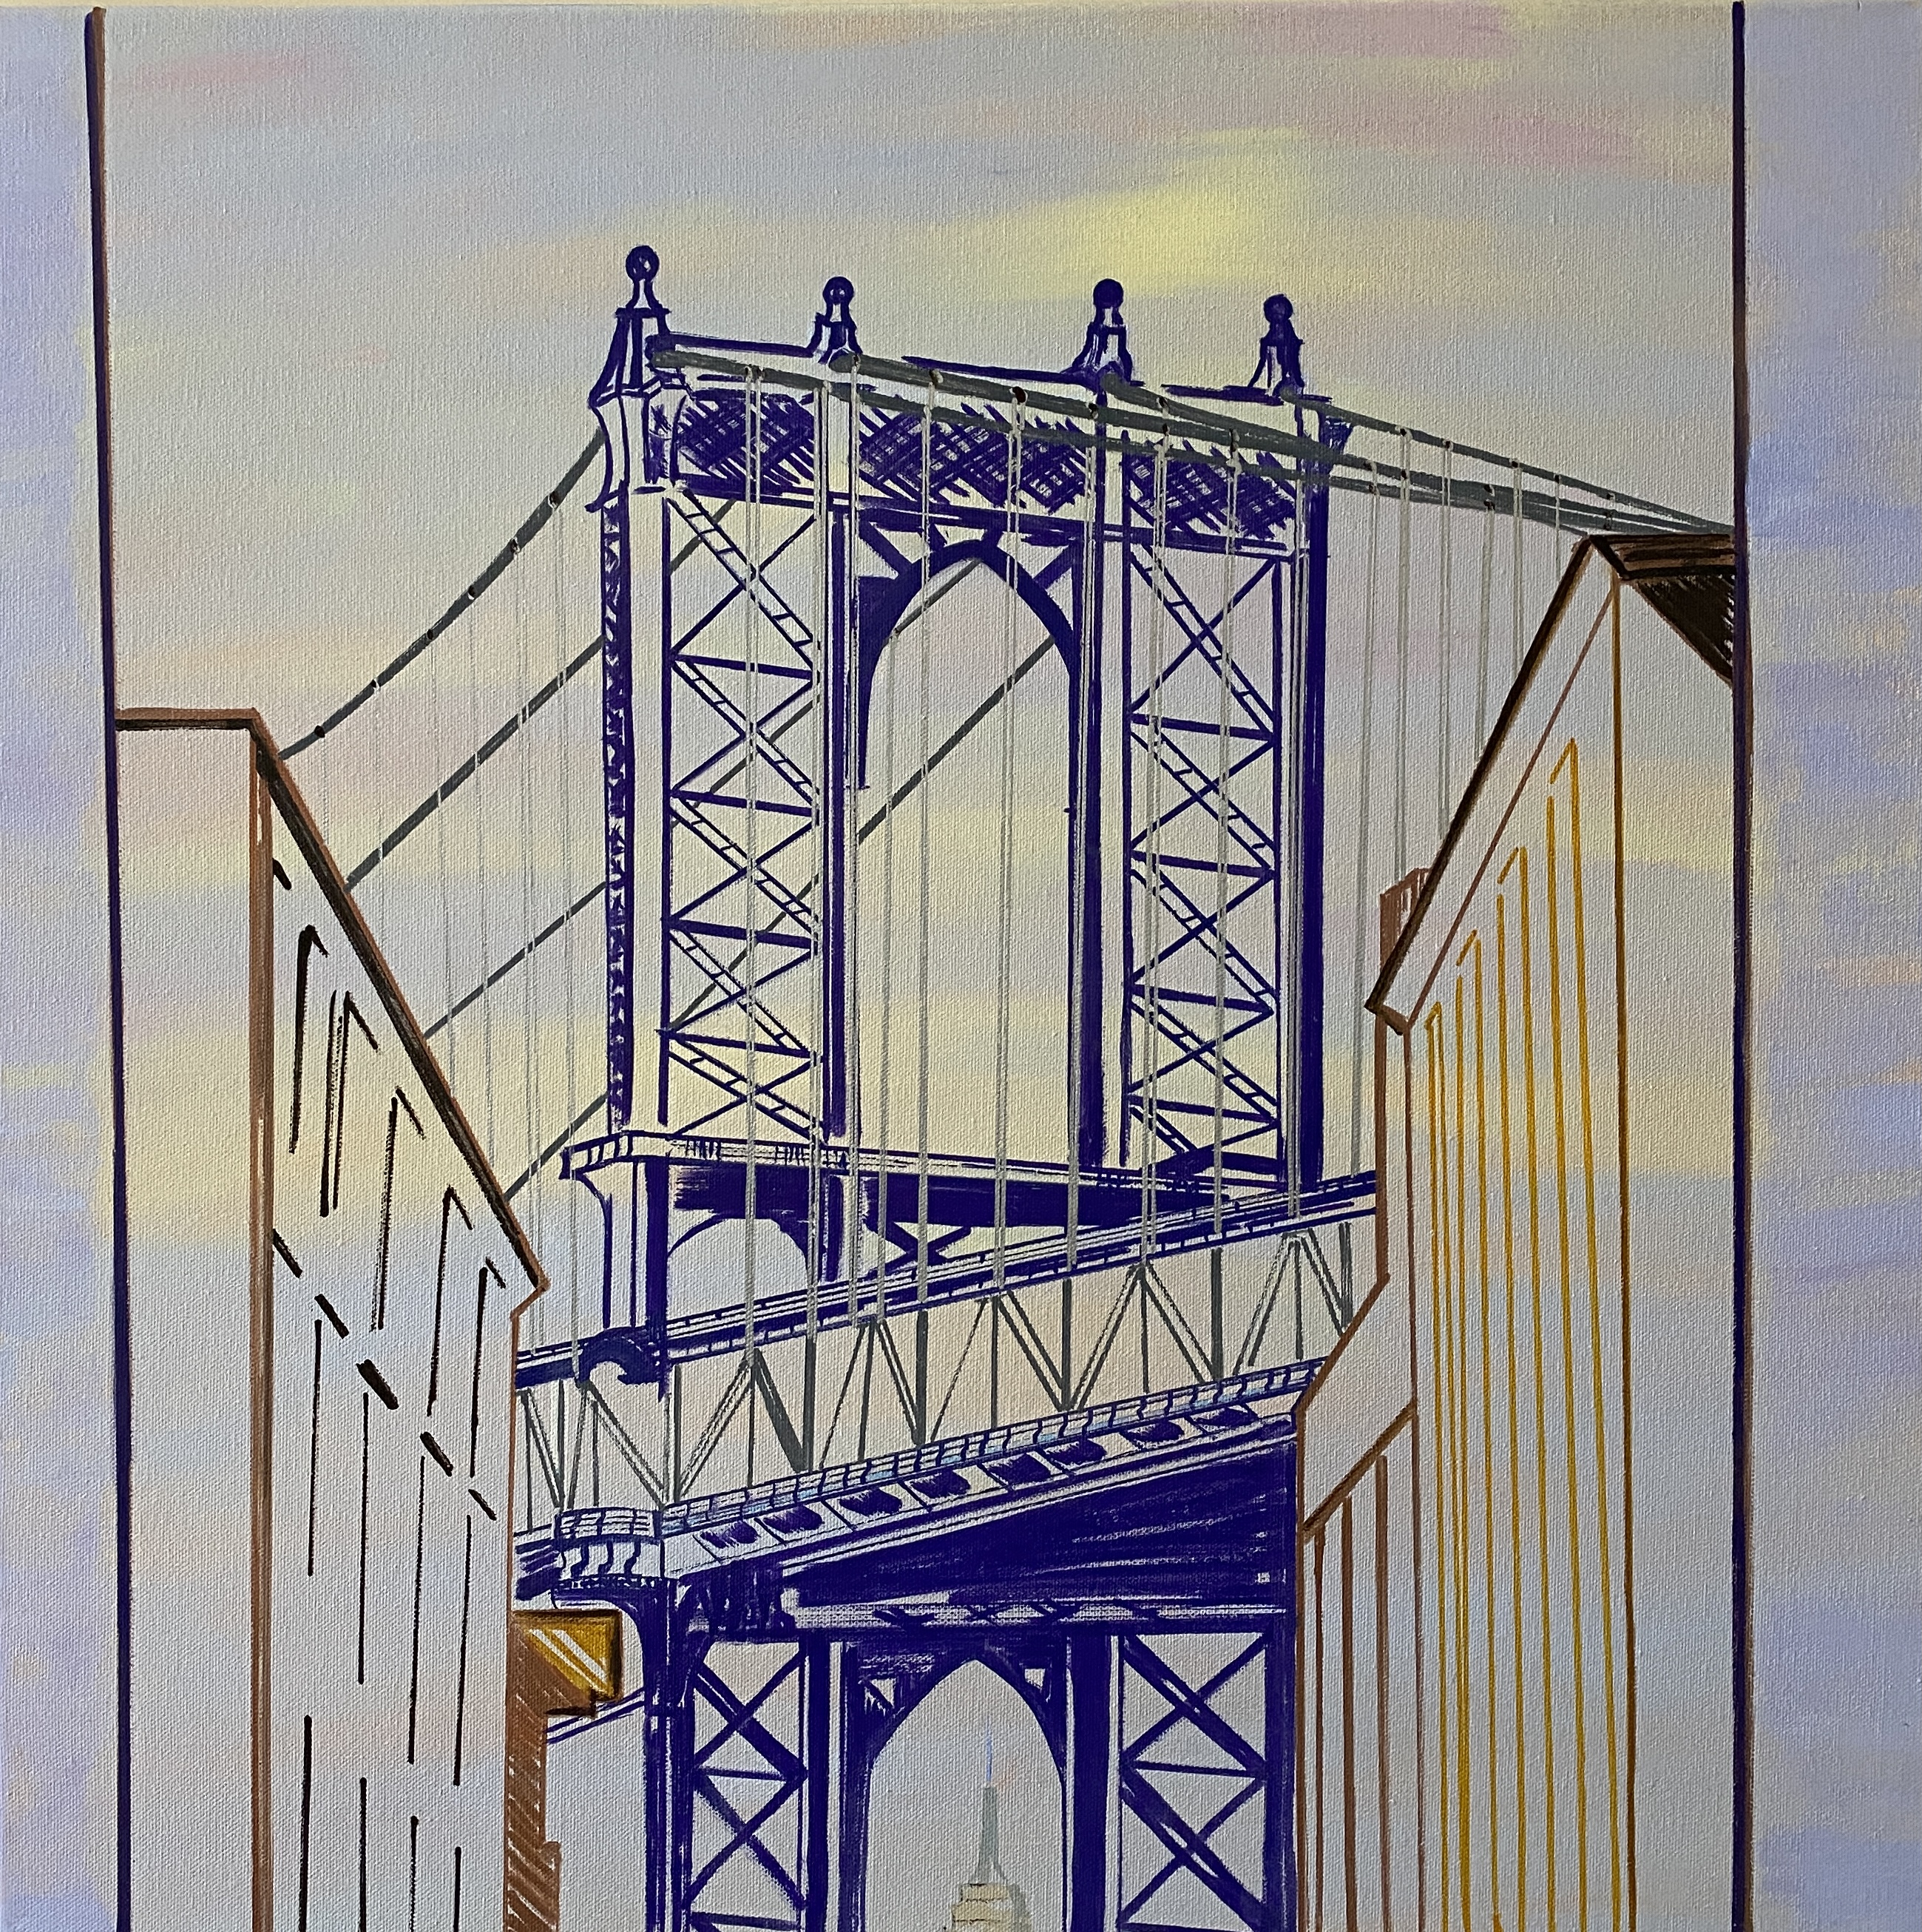 Manhattan Bridge (Build Bridges, Not Walls)